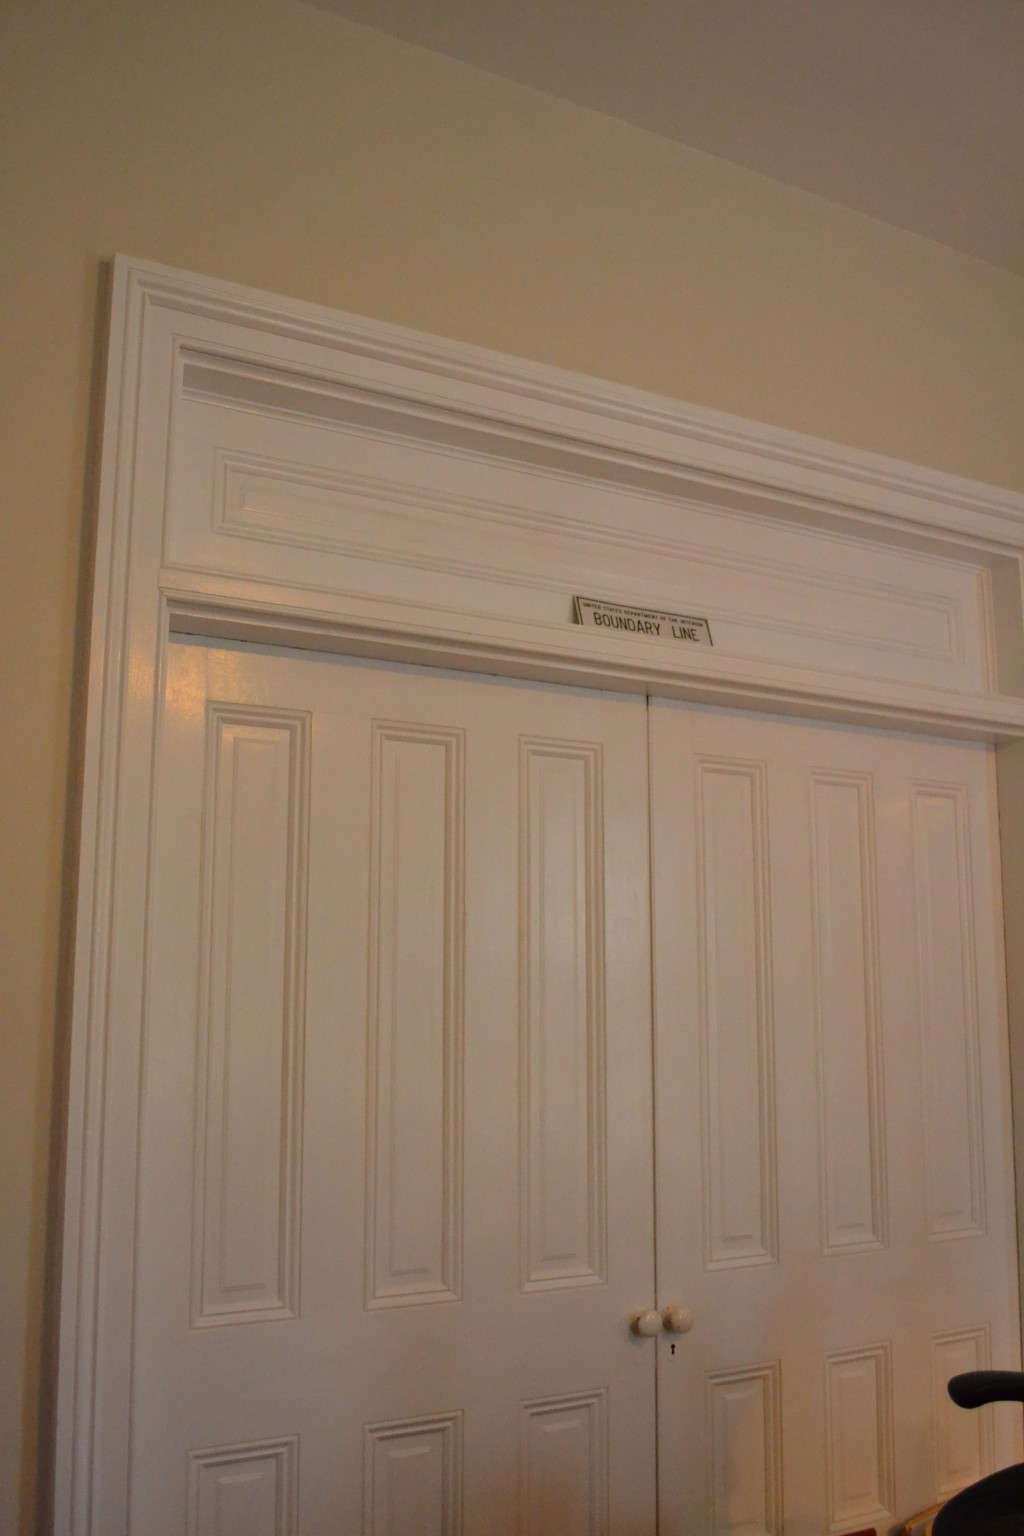 The large doors separating the owners' bedrooms. These doors swing open; they are not pocket doors, as you would expect.